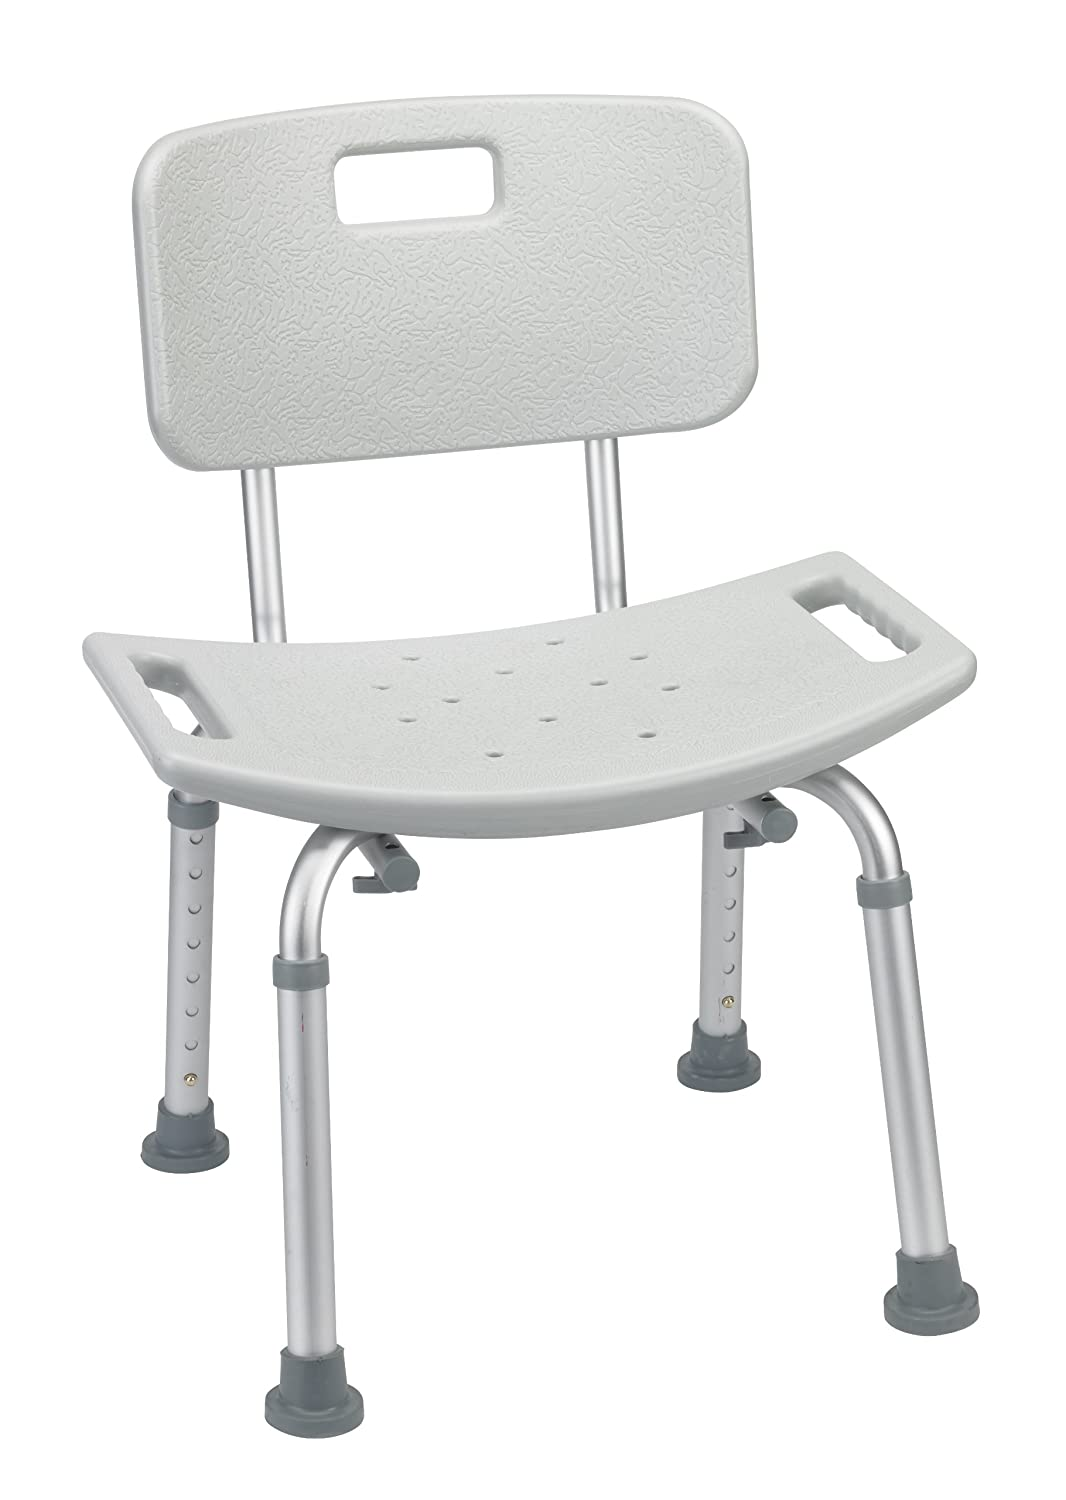 Amazon.com: Bathroom Safety Shower Tub Bench Chair with Back, Grey ...